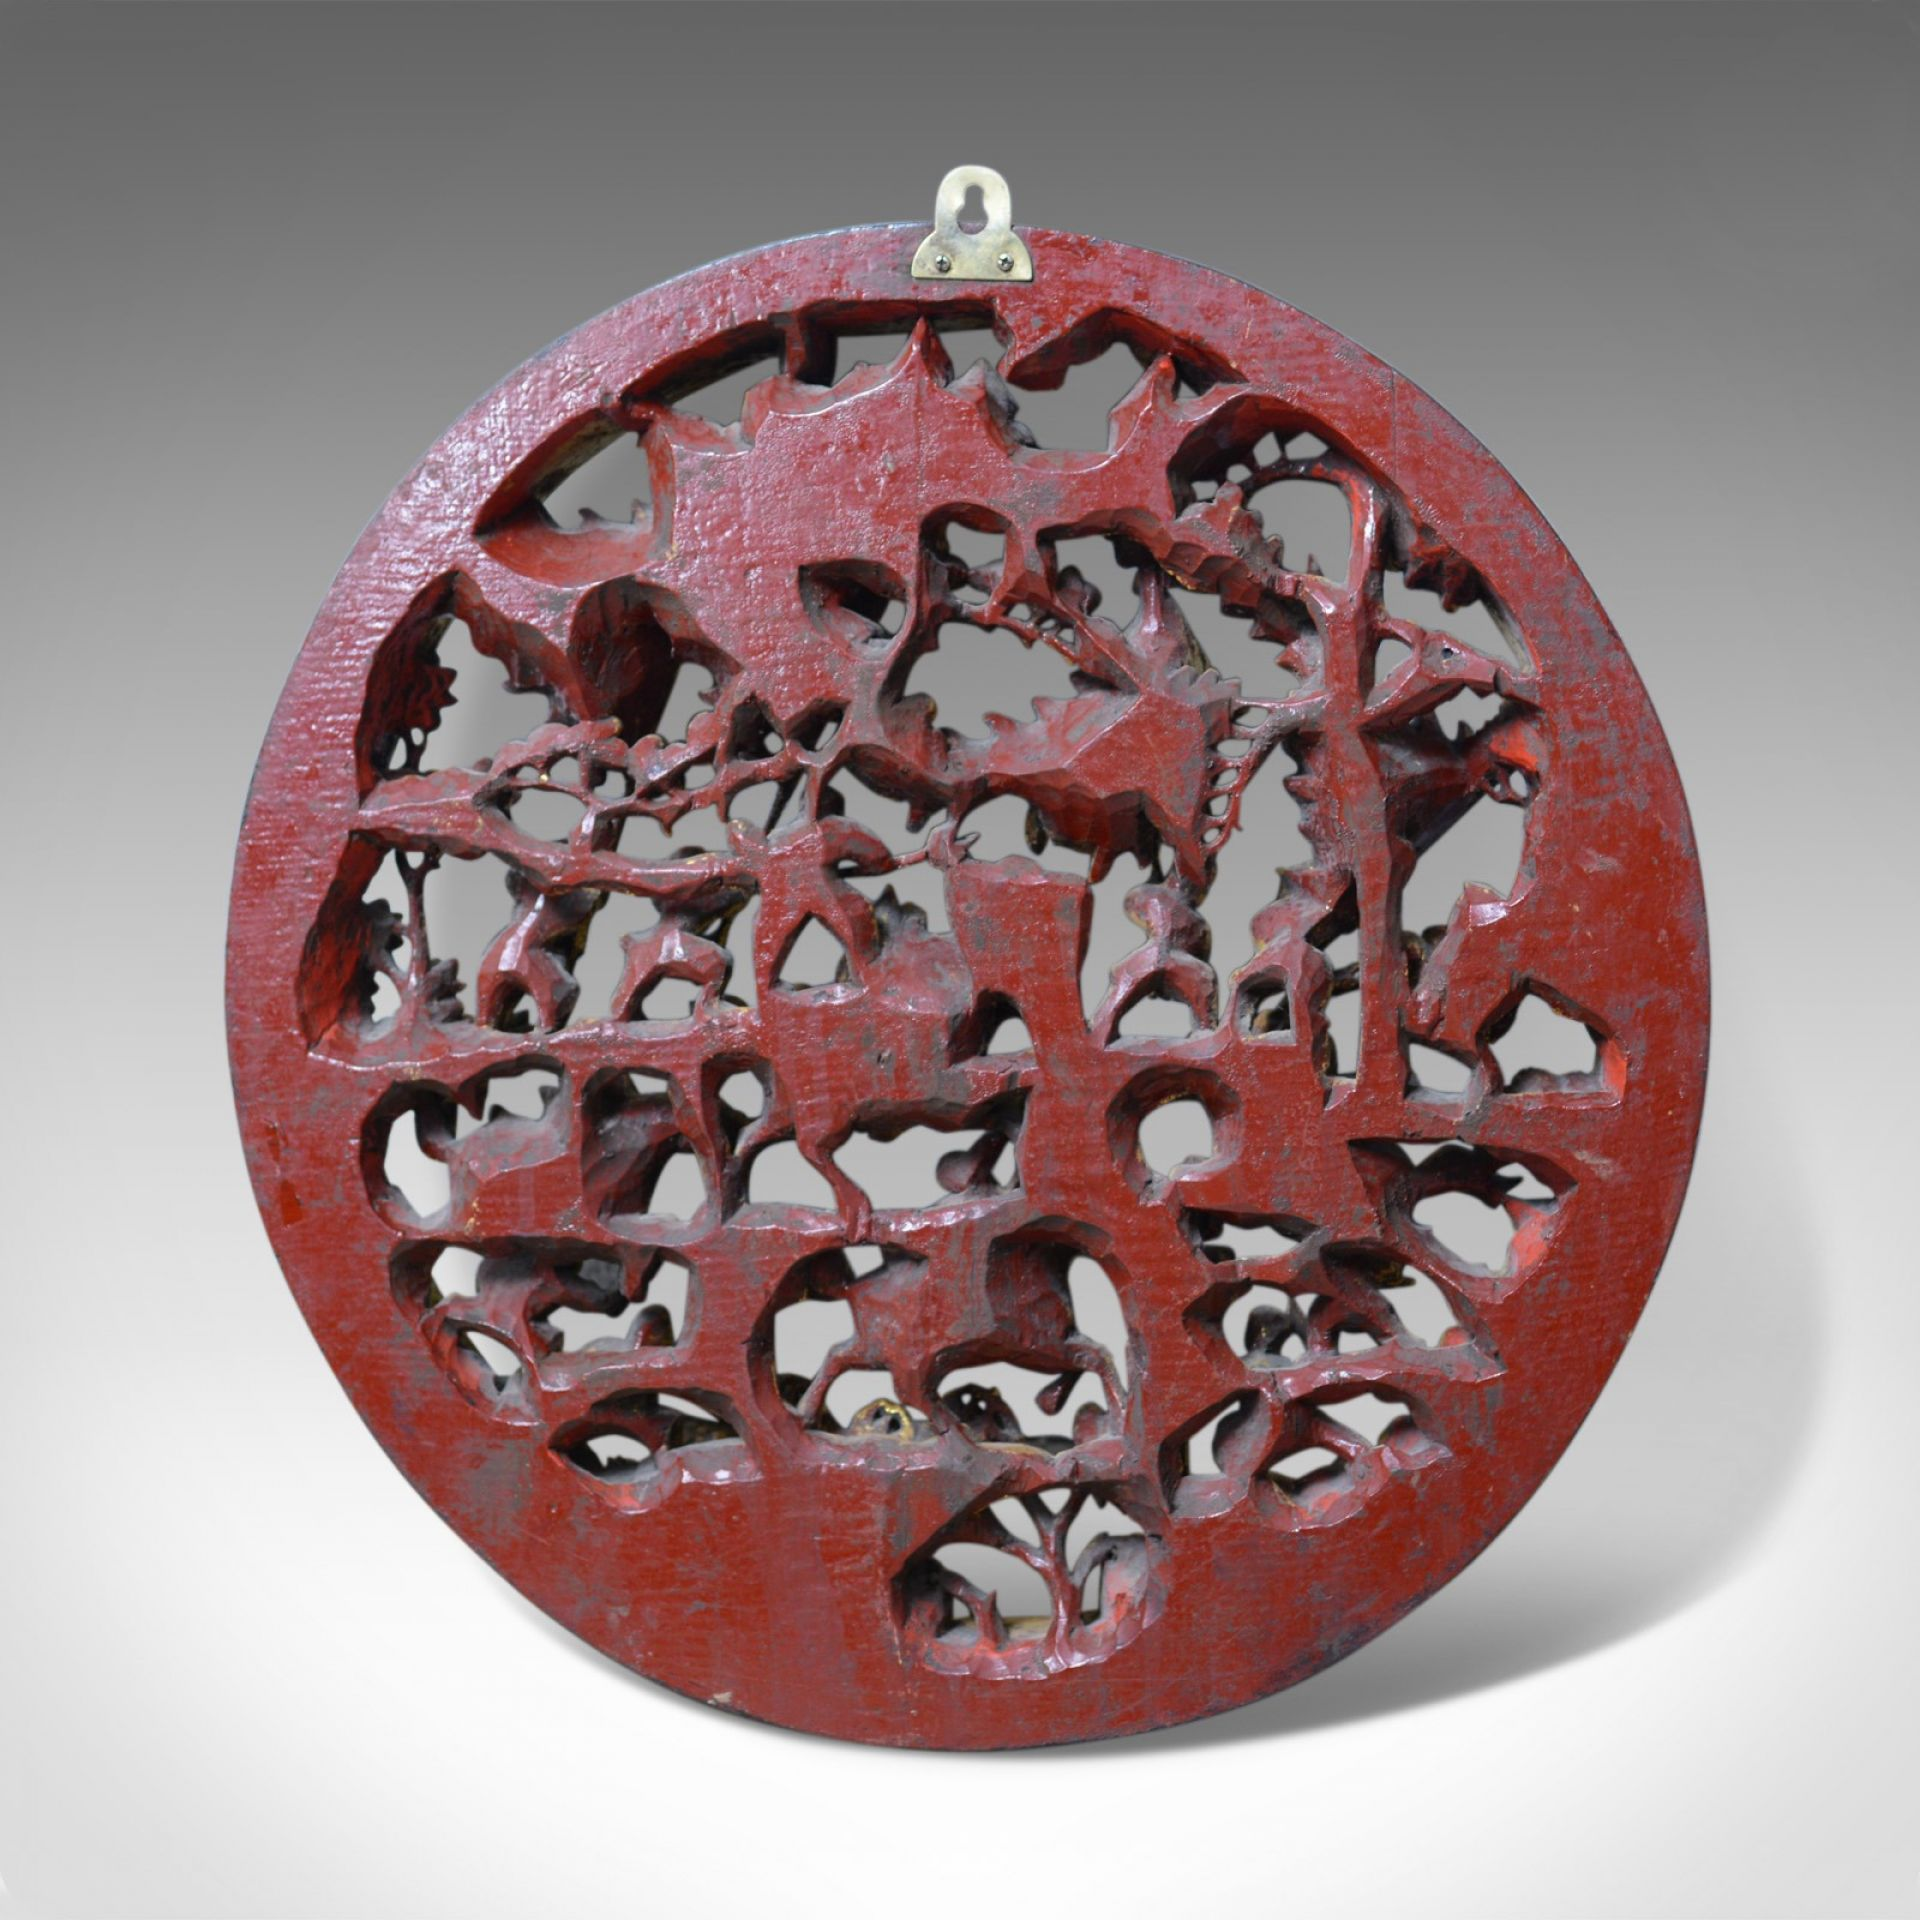 Antique Carved Wall Panel, Circular, Chinese, Giltwood, Decorative, Circa 1900